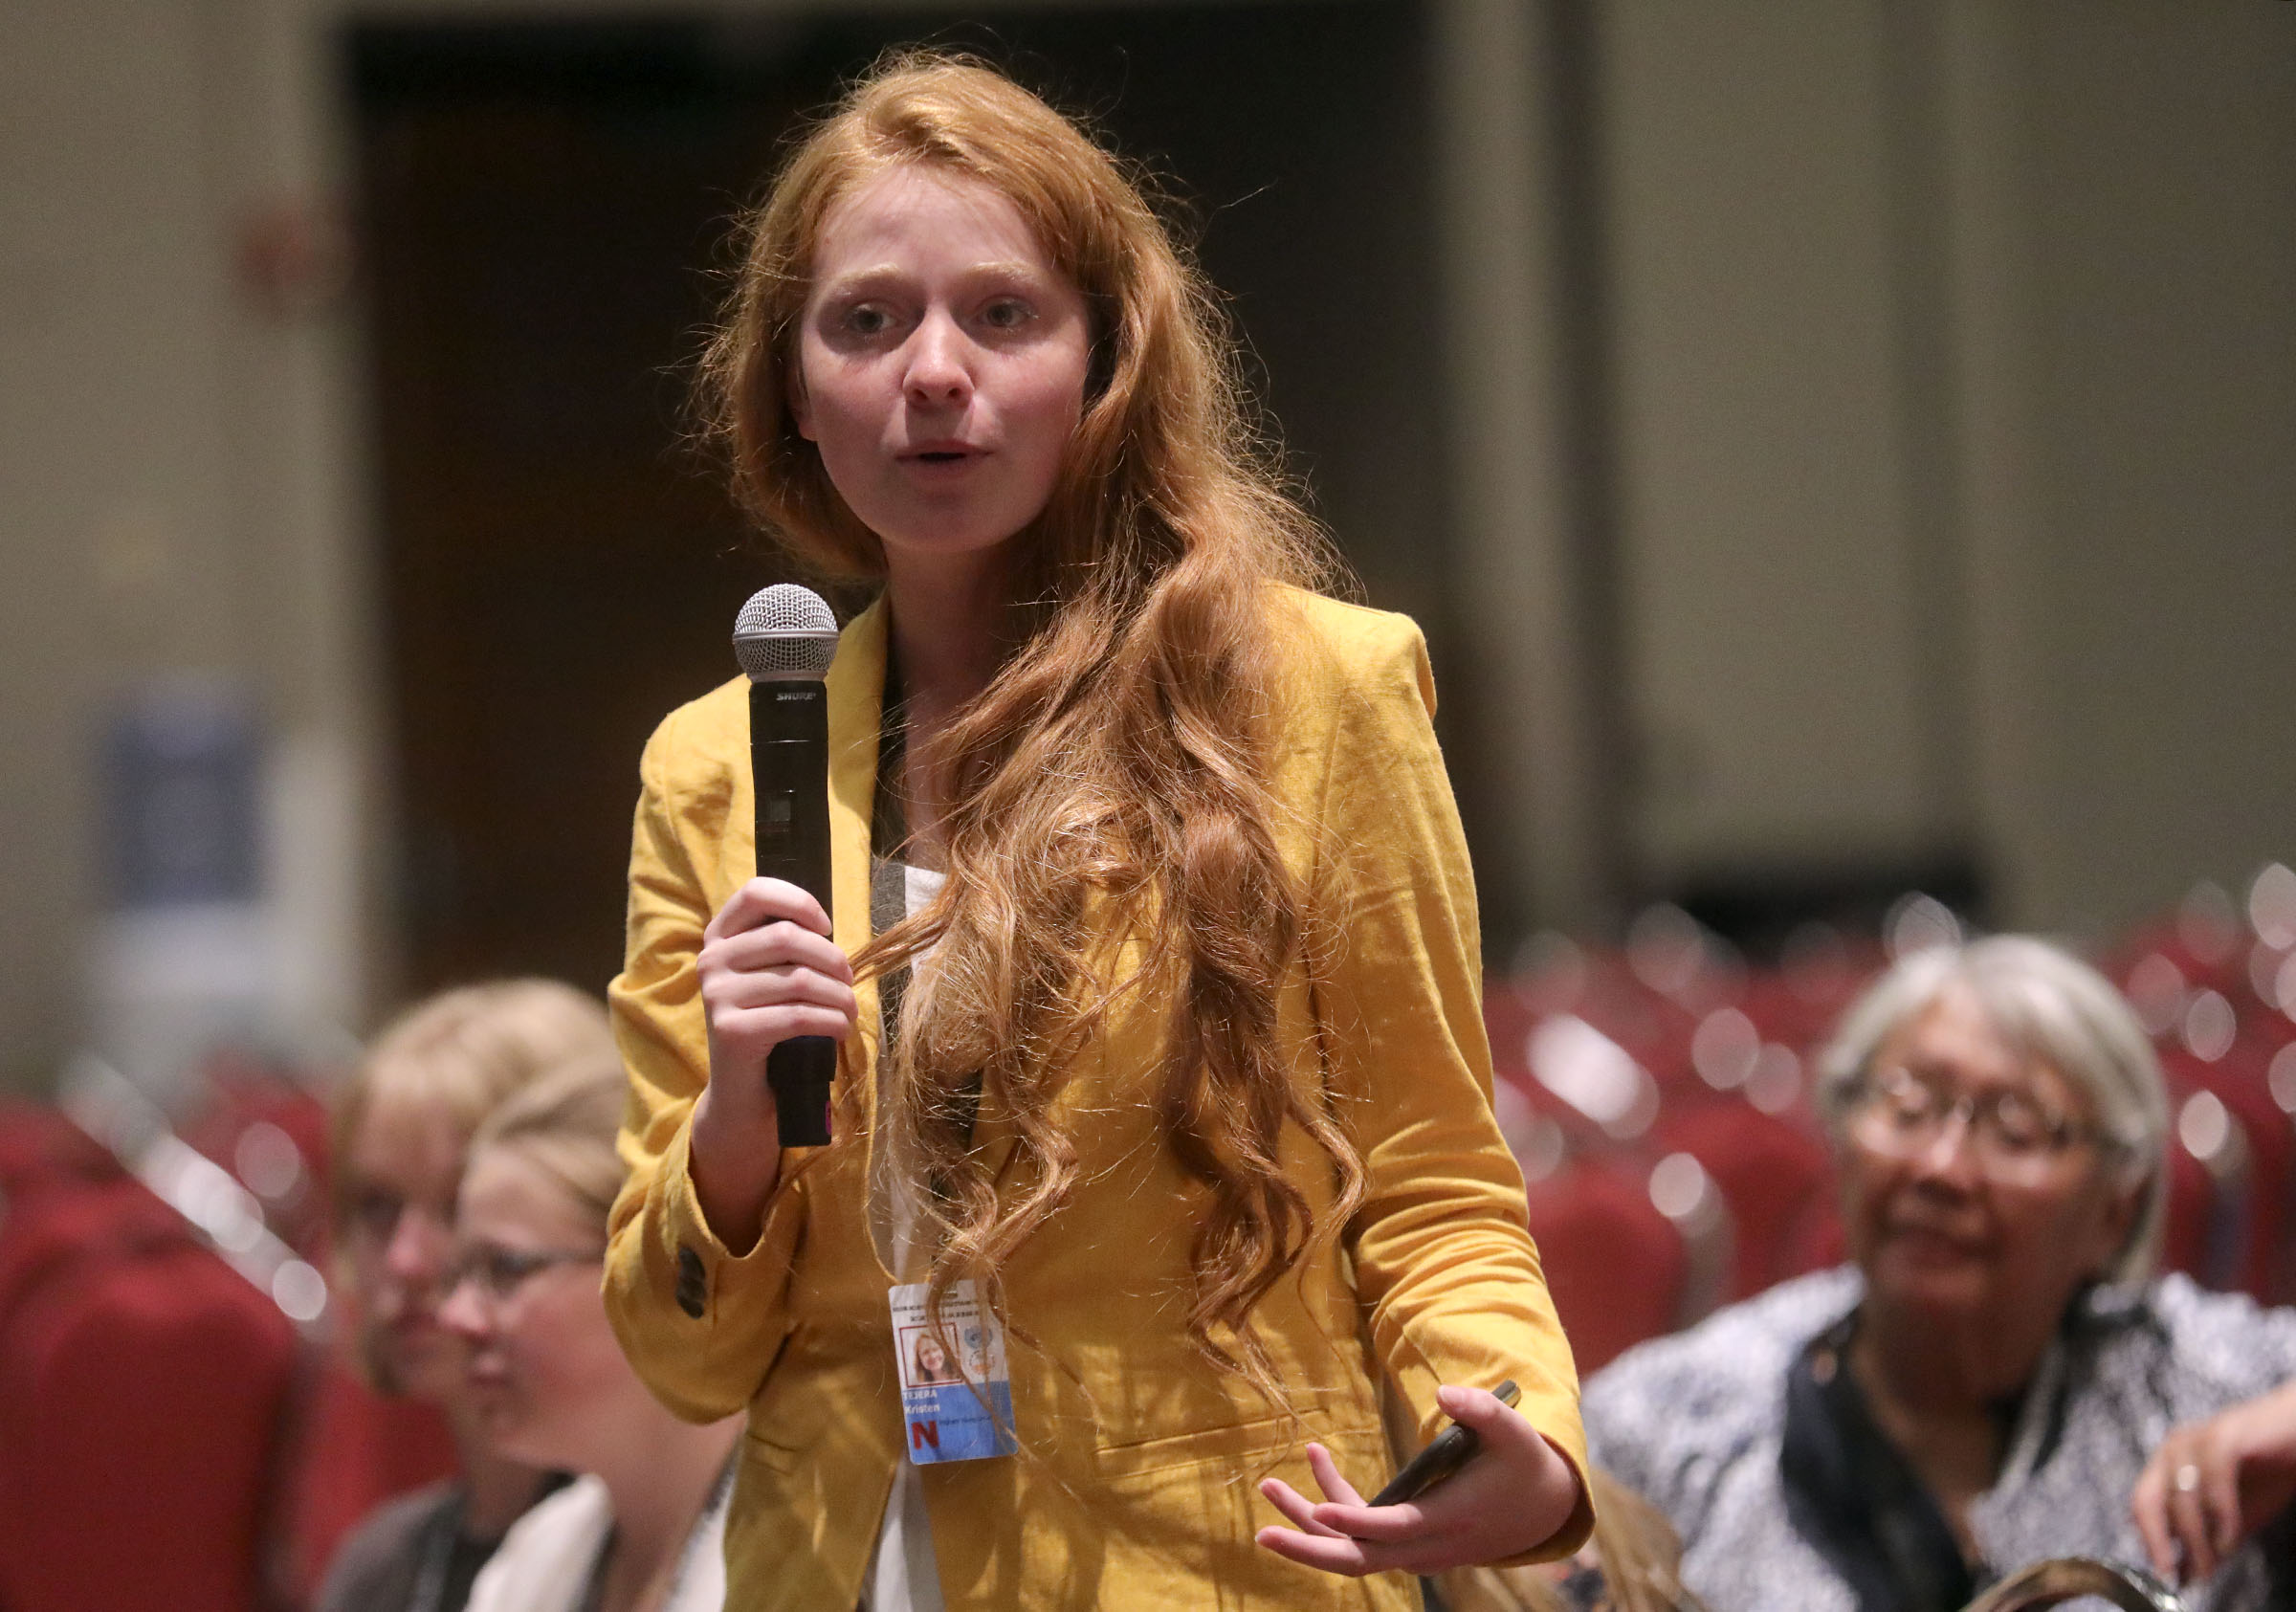 BYU freshman Kristen Tejera asks panelists a question during a thematic session titled Building Inclusive Communities Through Education at the 68th United Nations Civil Society Conference at the Salt Palace Convention Center in Salt Lake City on Monday, Aug. 26, 2019.